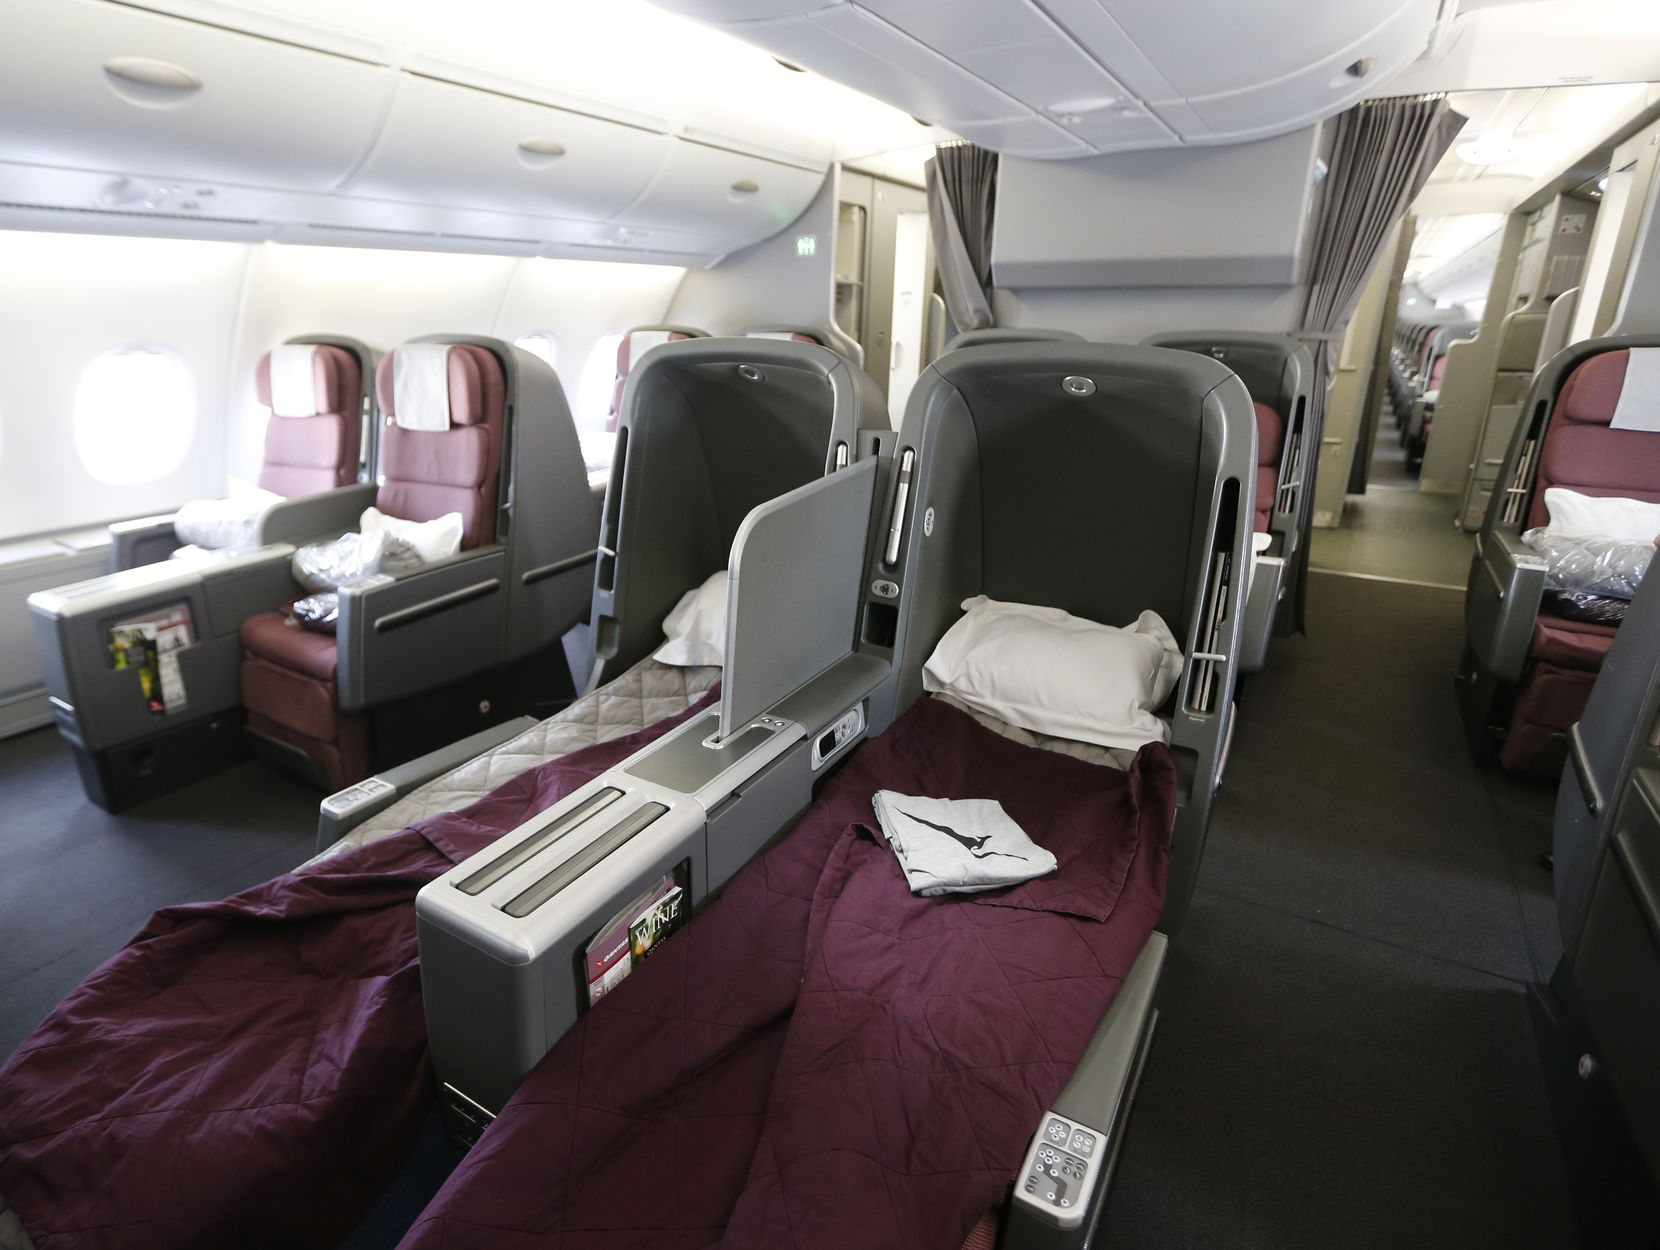 This is the business class cabin in the Qantas A380-800 airplane where passengers can lie down with plenty of room.